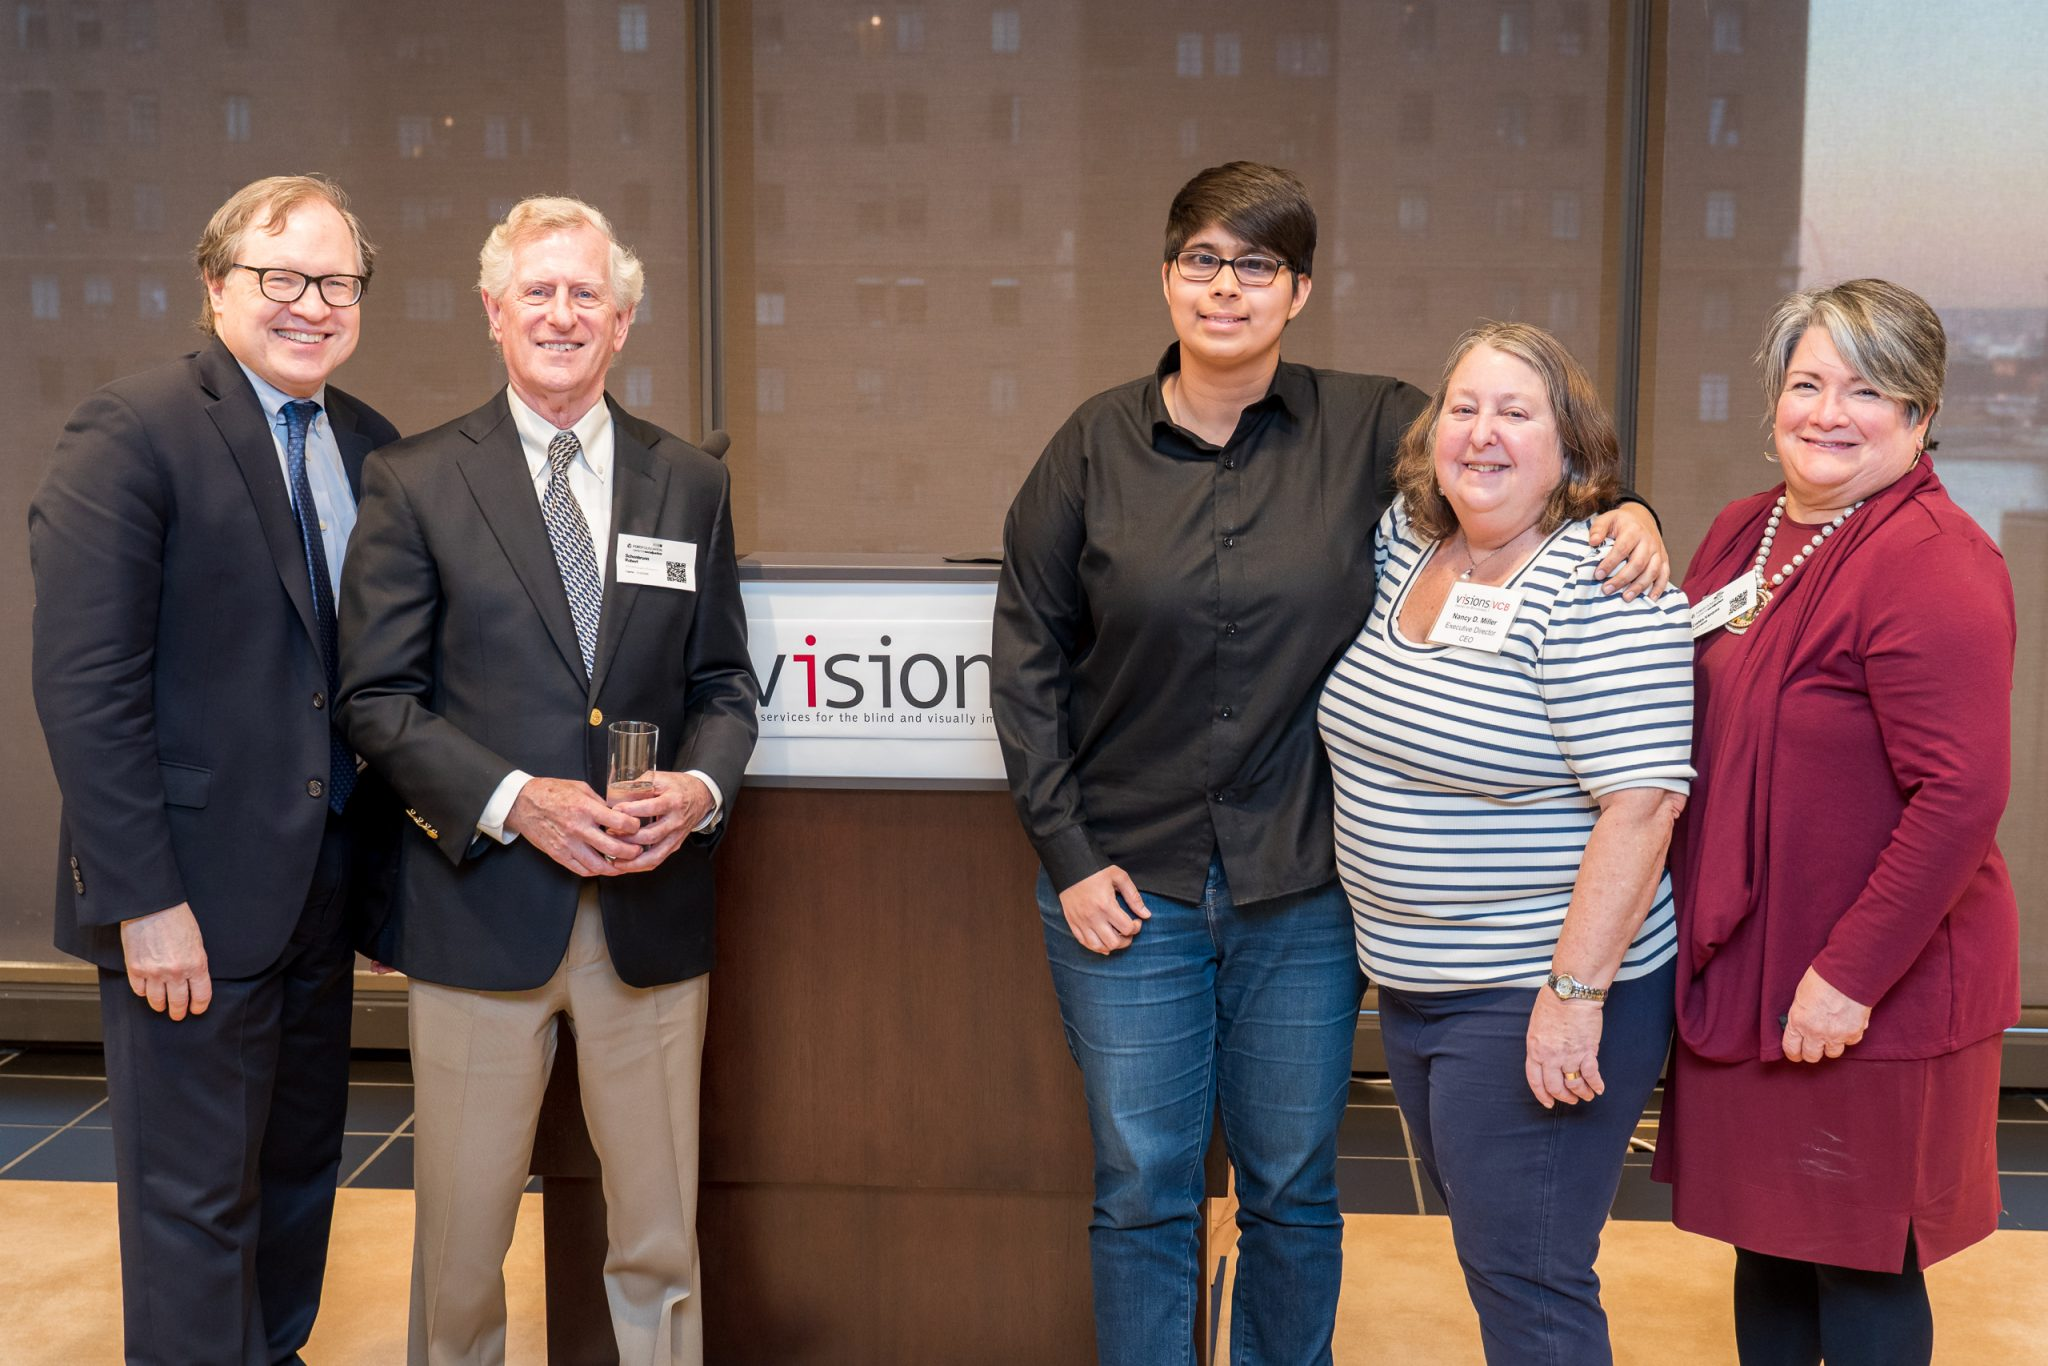 A group of five people stand together in front of a podium bearing the VISIONS logo